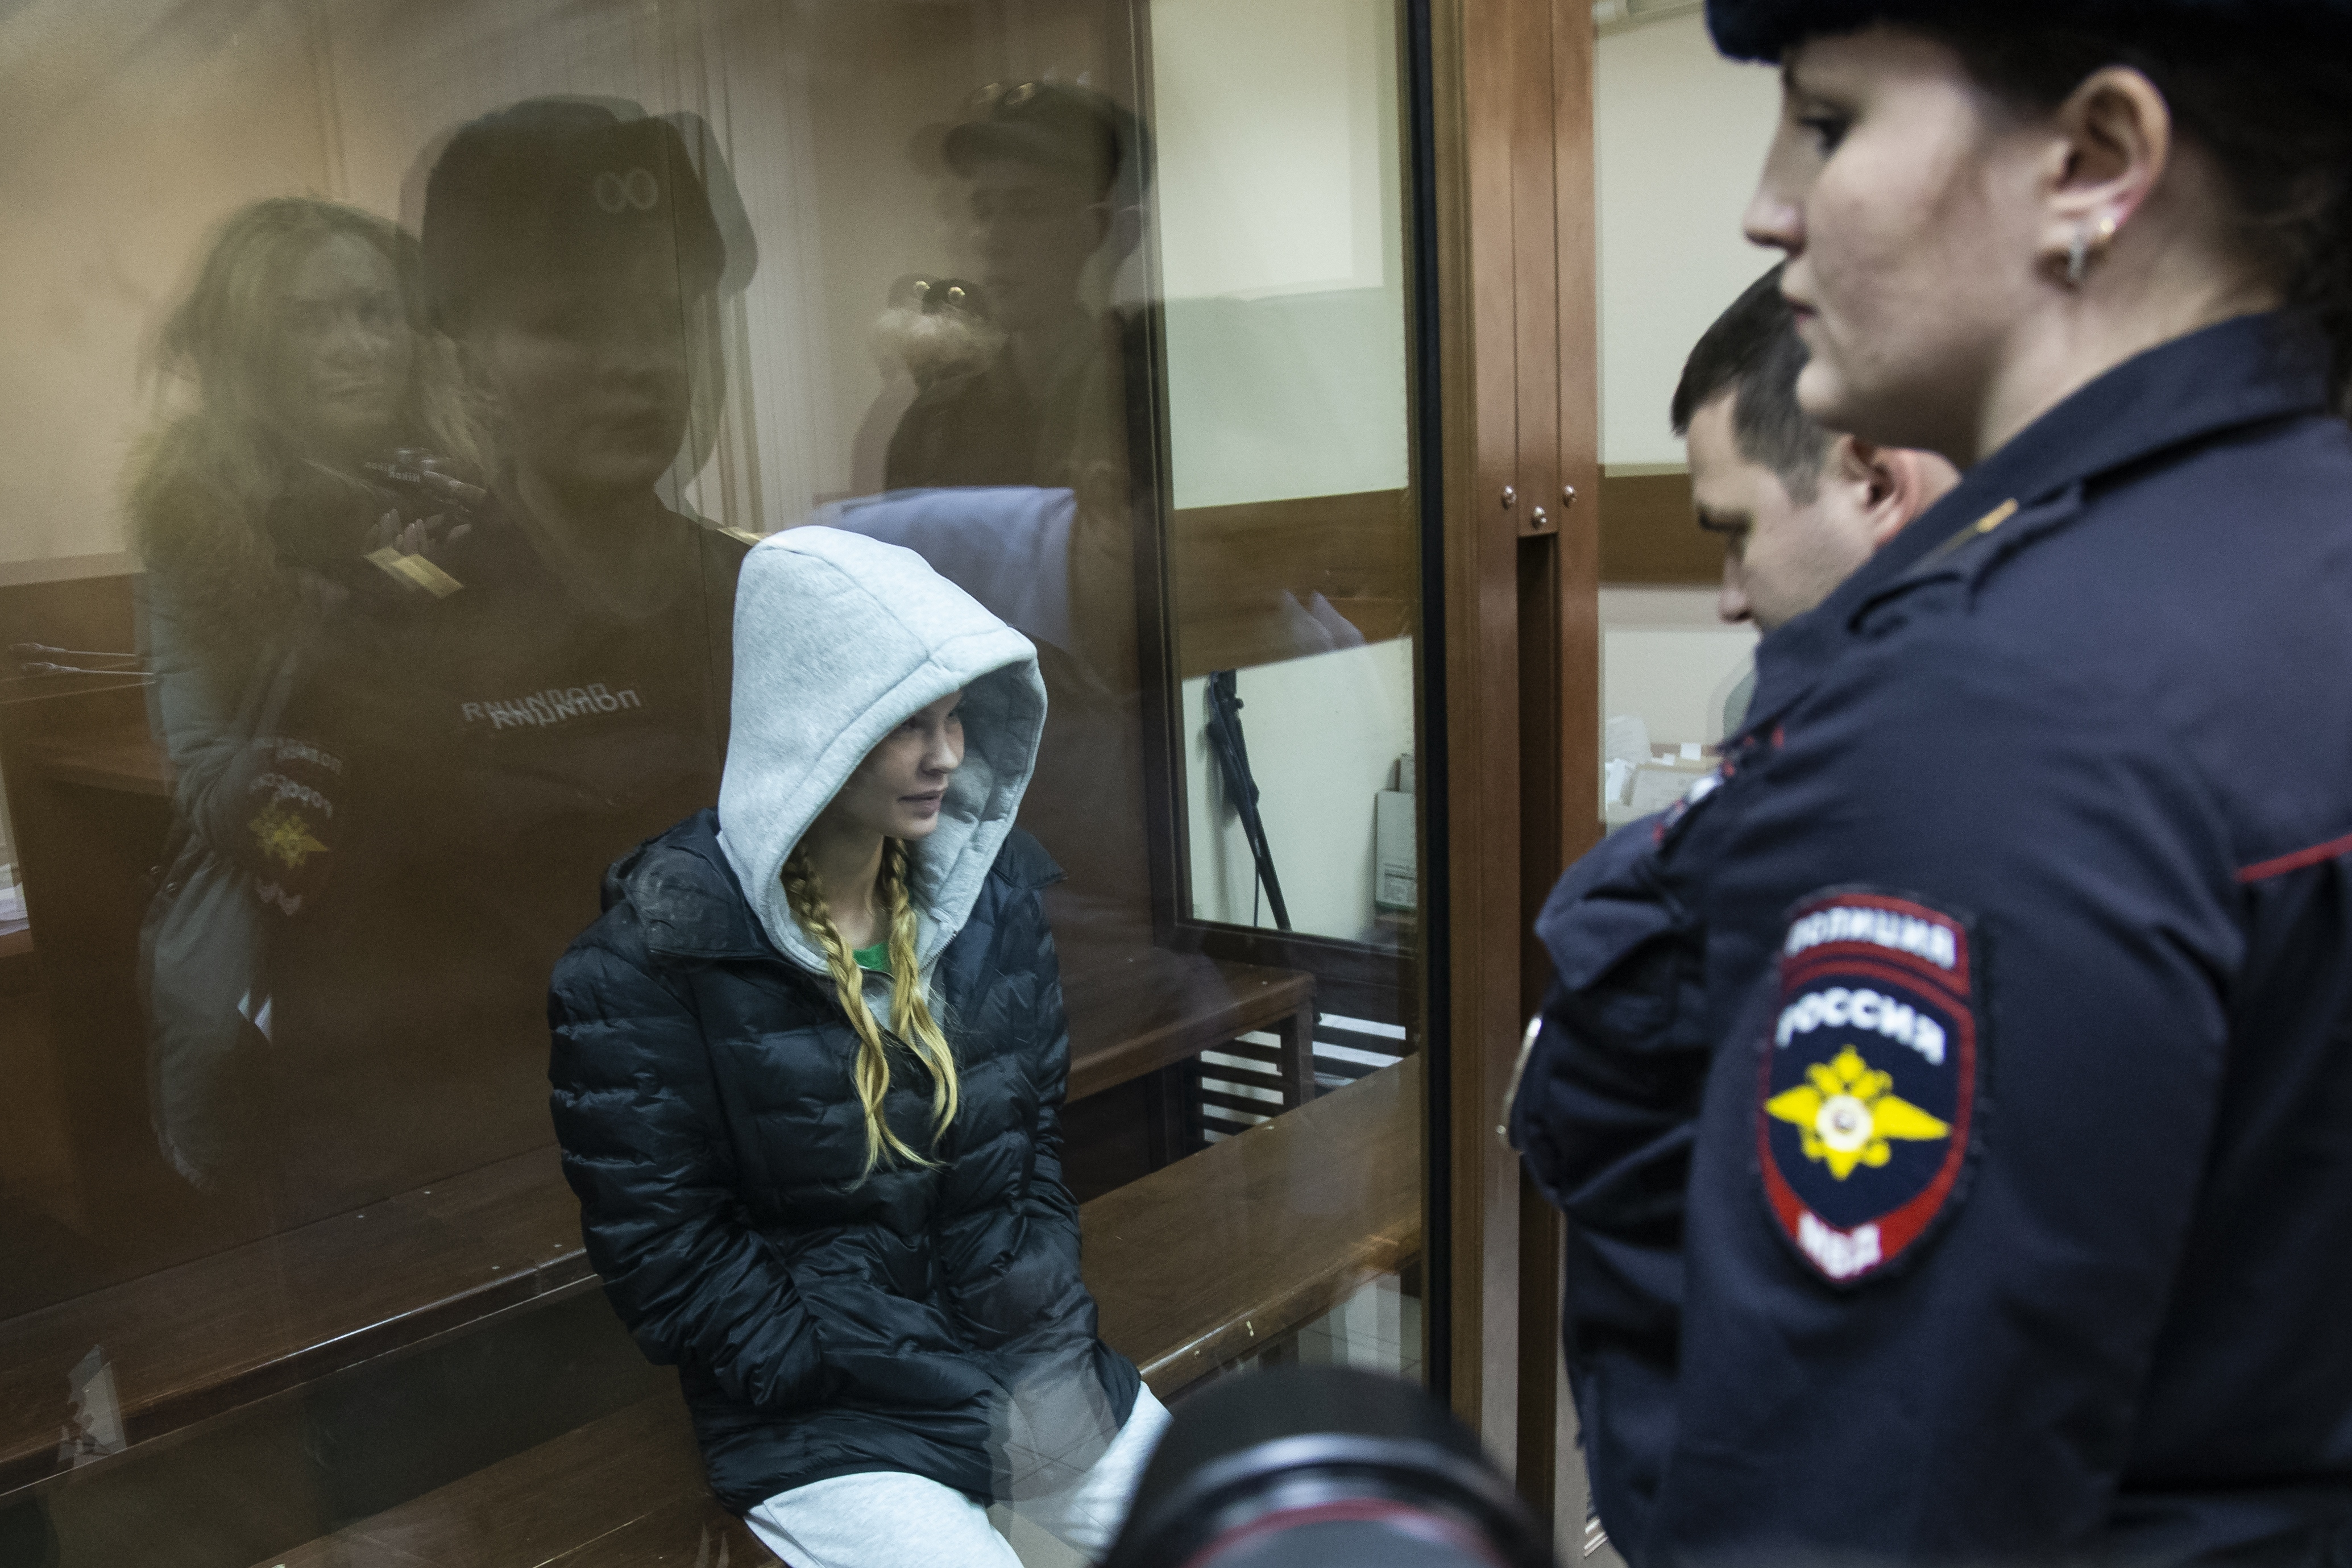 Anastasia Vashukevich, also known on social media as Nastya Rybka, left, sits in a cage in the court room in Moscow, Russia, Saturday, Jan. 19, 2019. A Belarusian model who claimed last year that she had evidence of Russian interference in the election of Donald Trump as U.S. president was arrested immediately upon her arrival in Moscow on Thursday following deportation from Thailand. (AP Photo/Alexander Zemlianichenko)